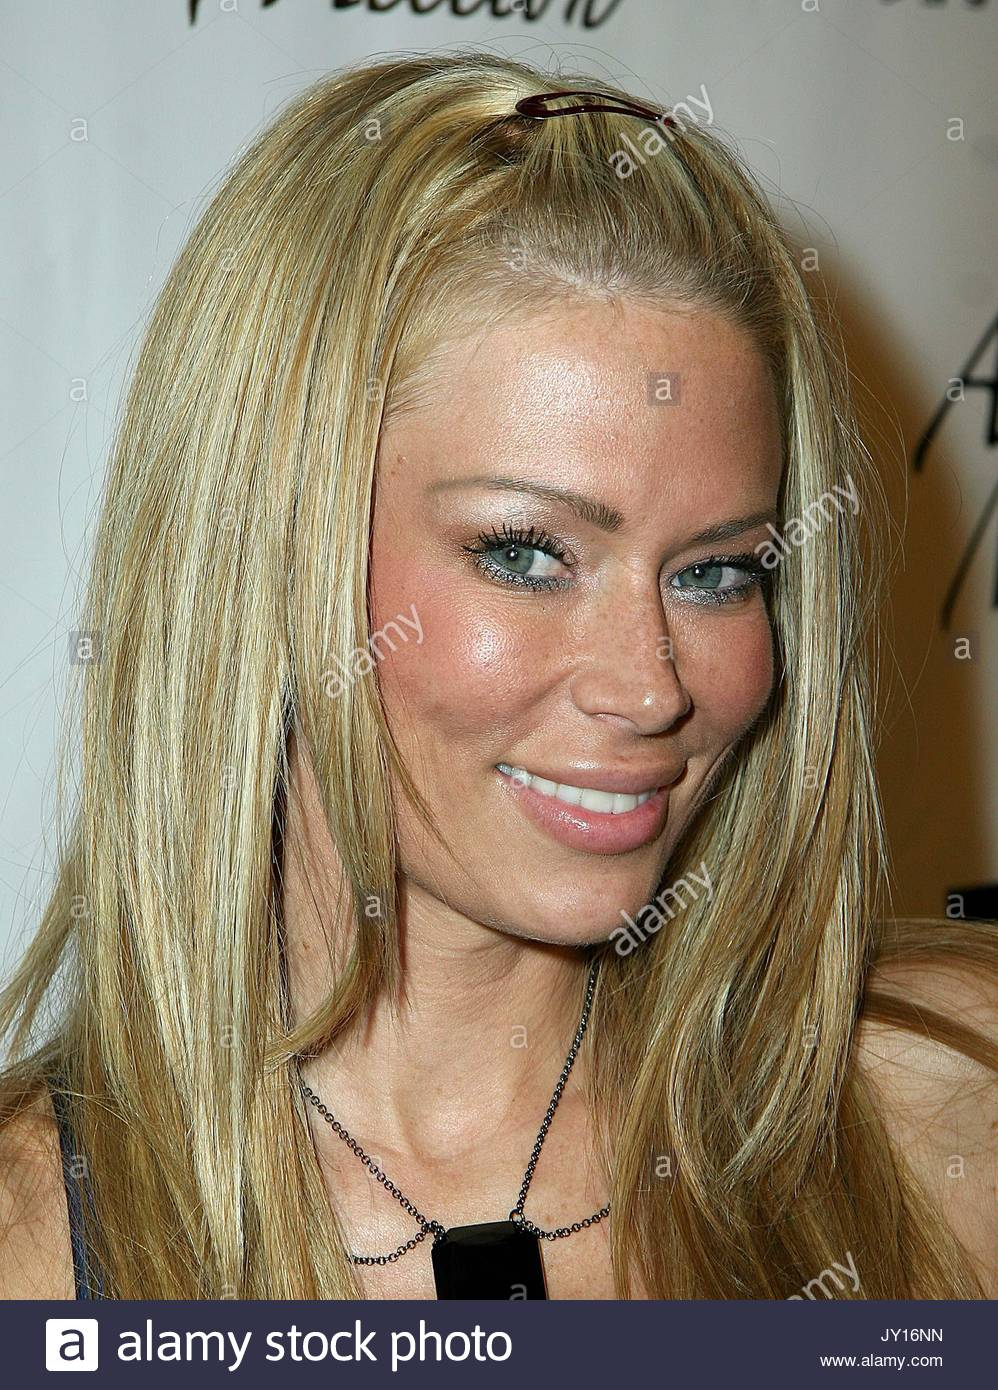 jenna jameson young